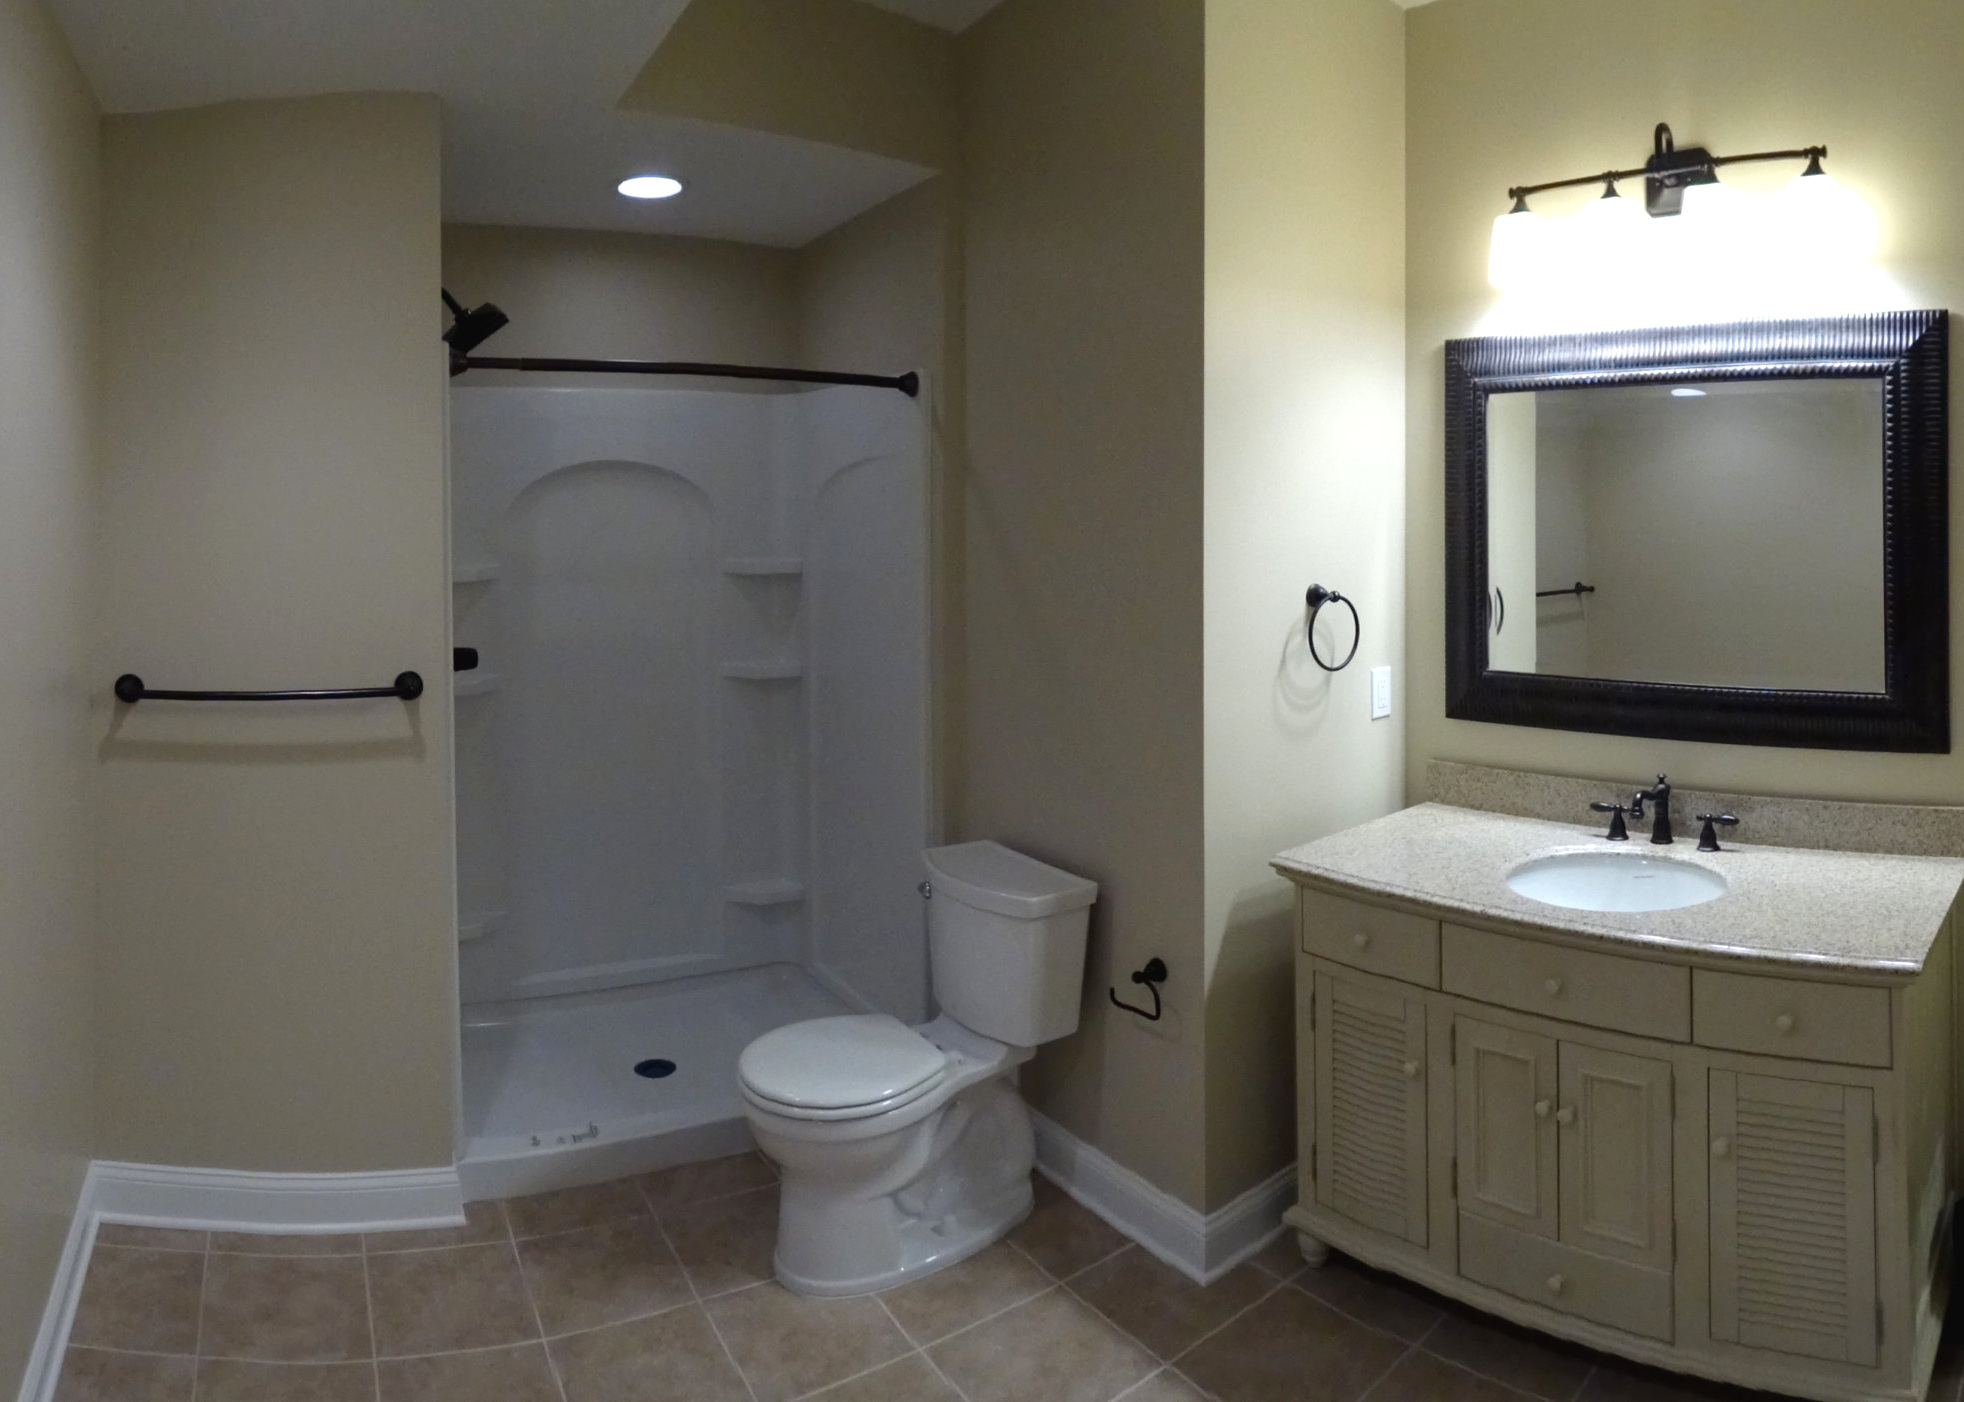 Basement bathroom in Avon, OH